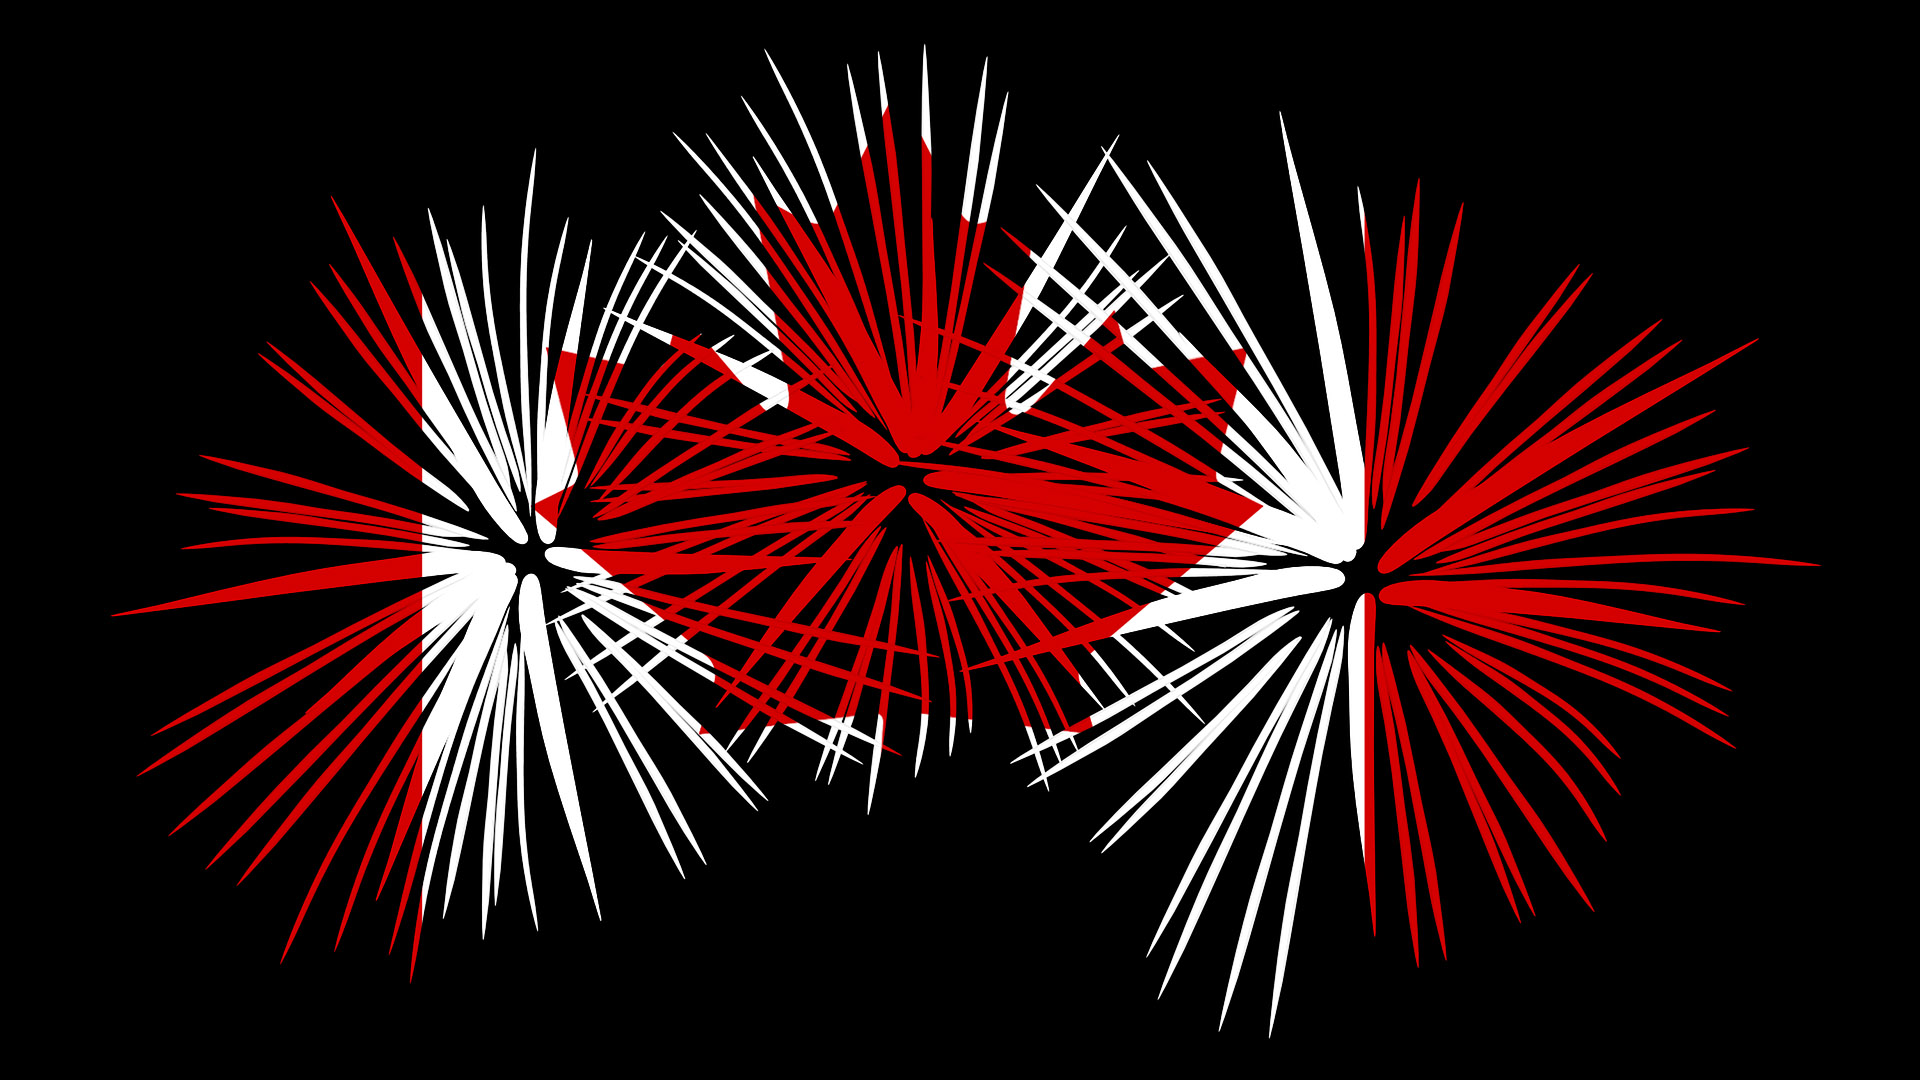 Canada Day - Red and White Flag in Fireworks Burst